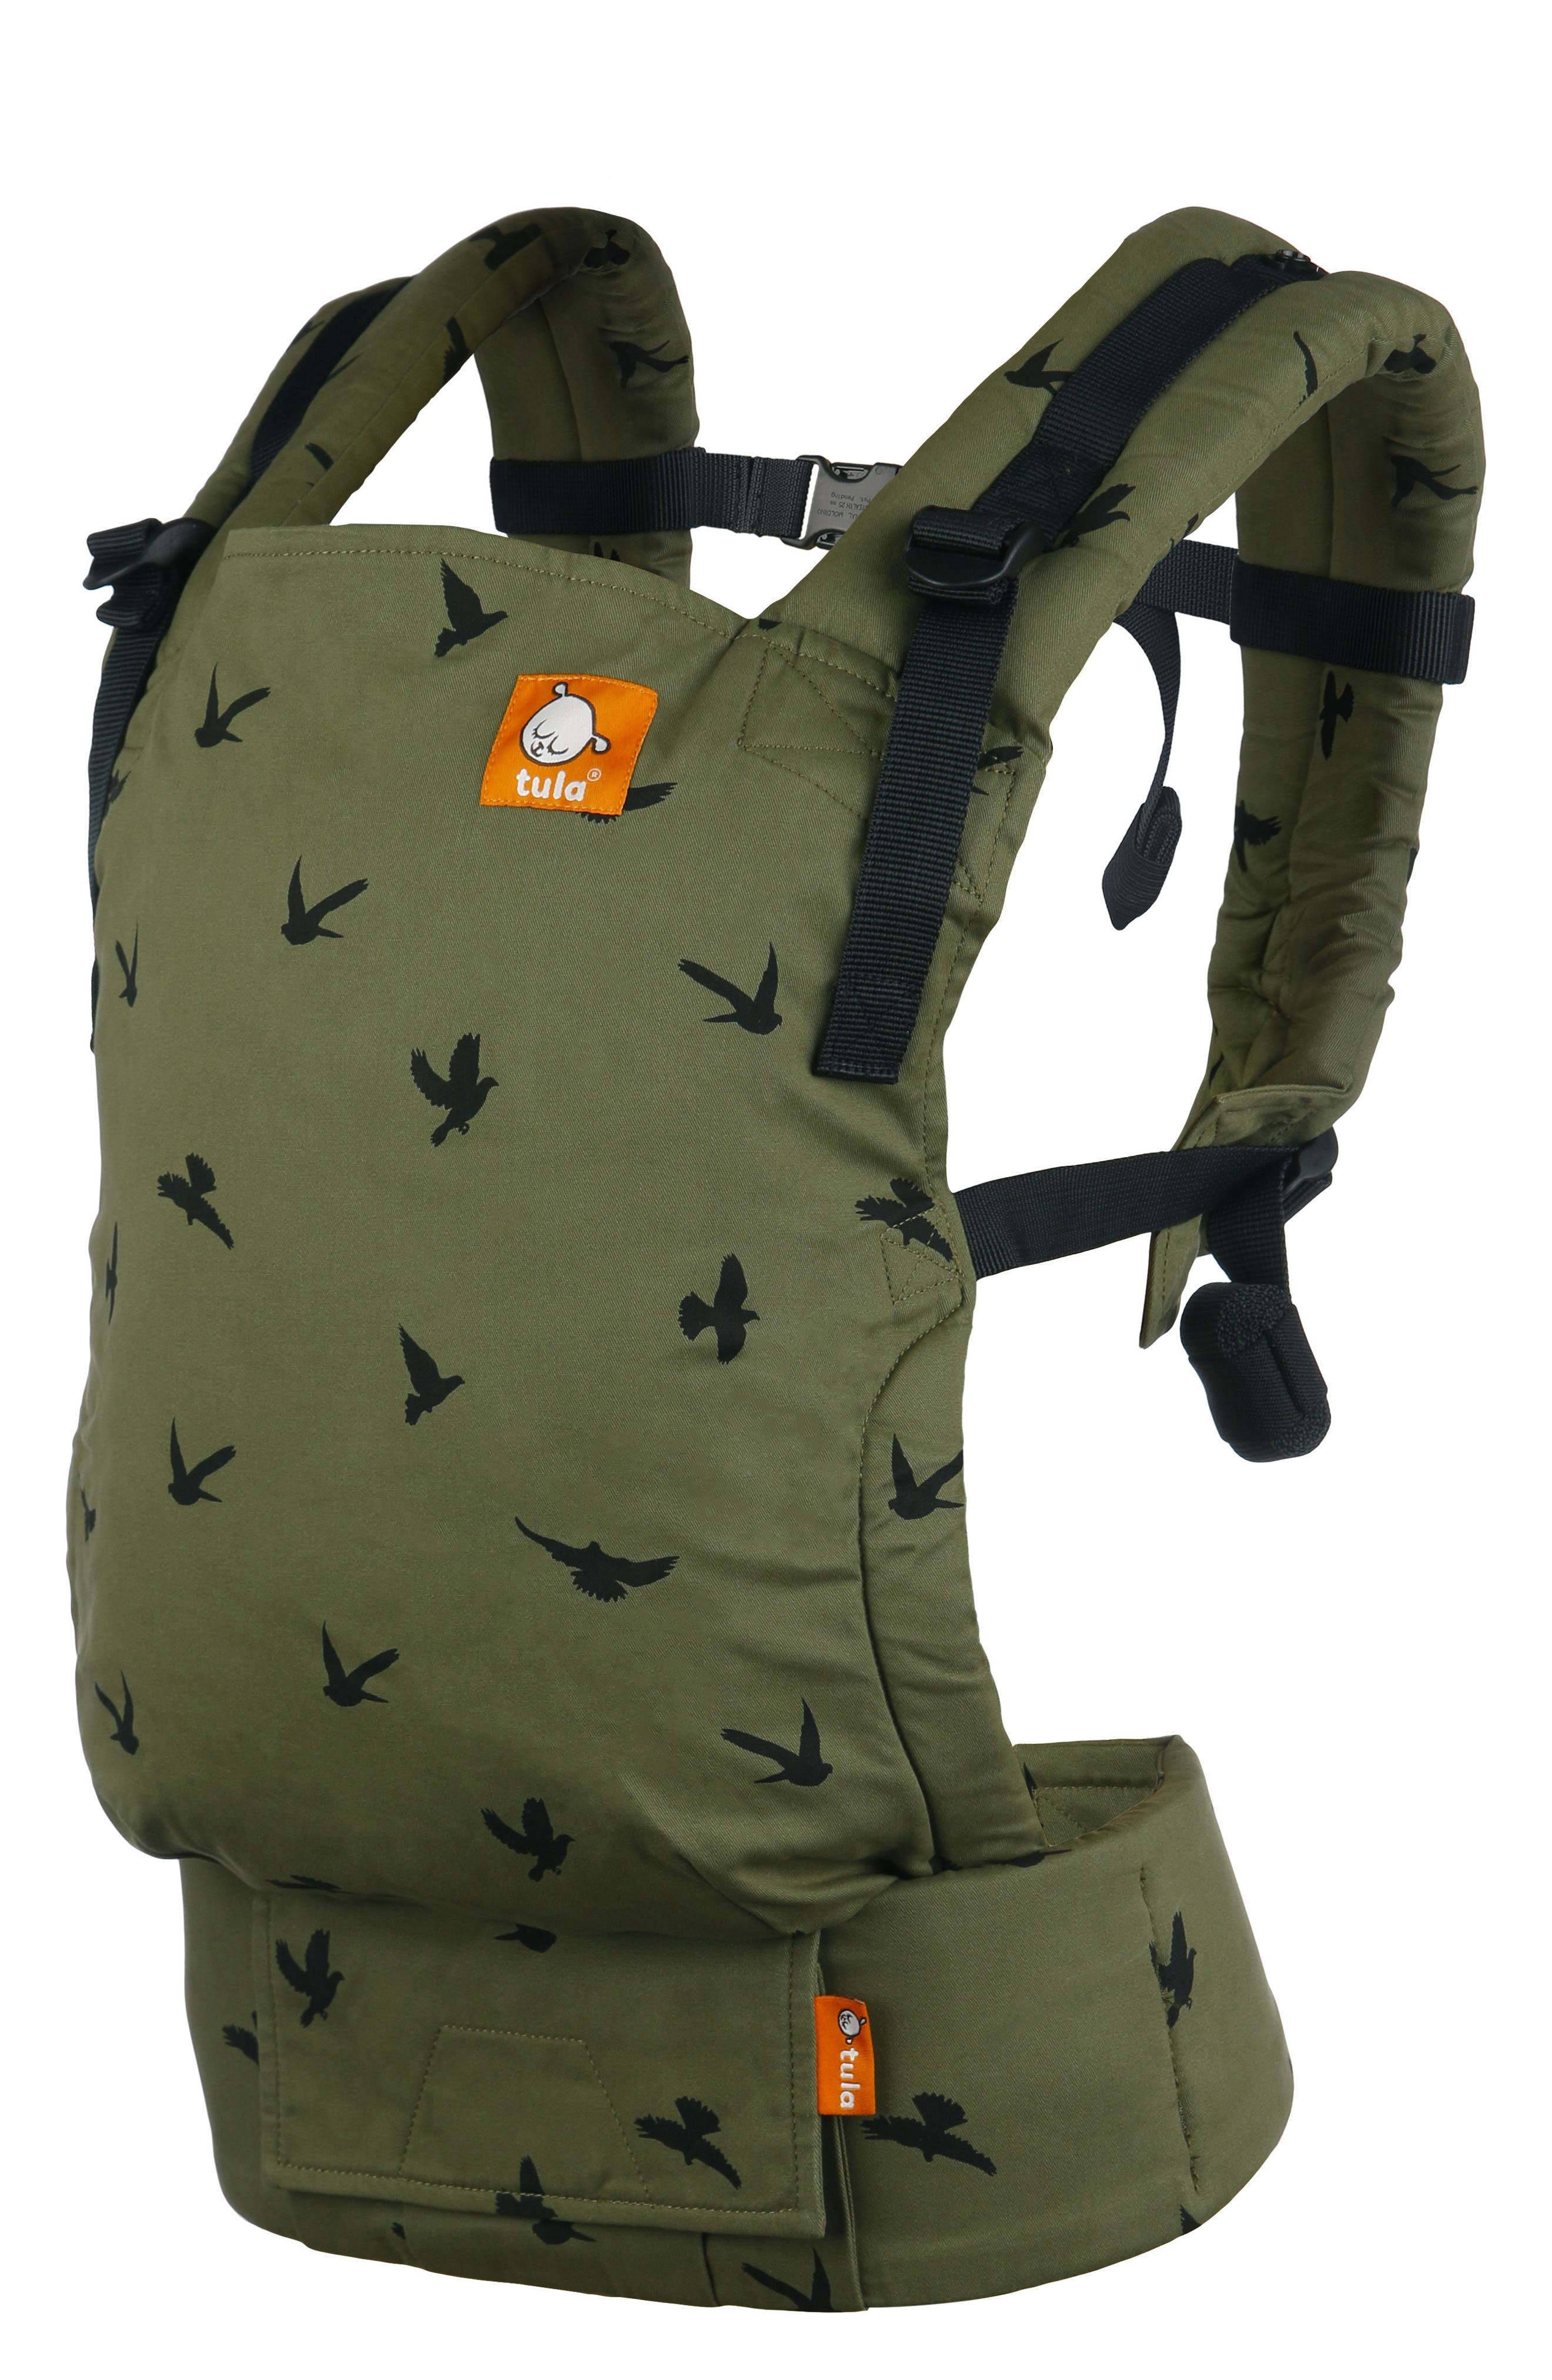 Infant Baby Tula Soar FreeToGrow Baby Carrier Size One Size  Green